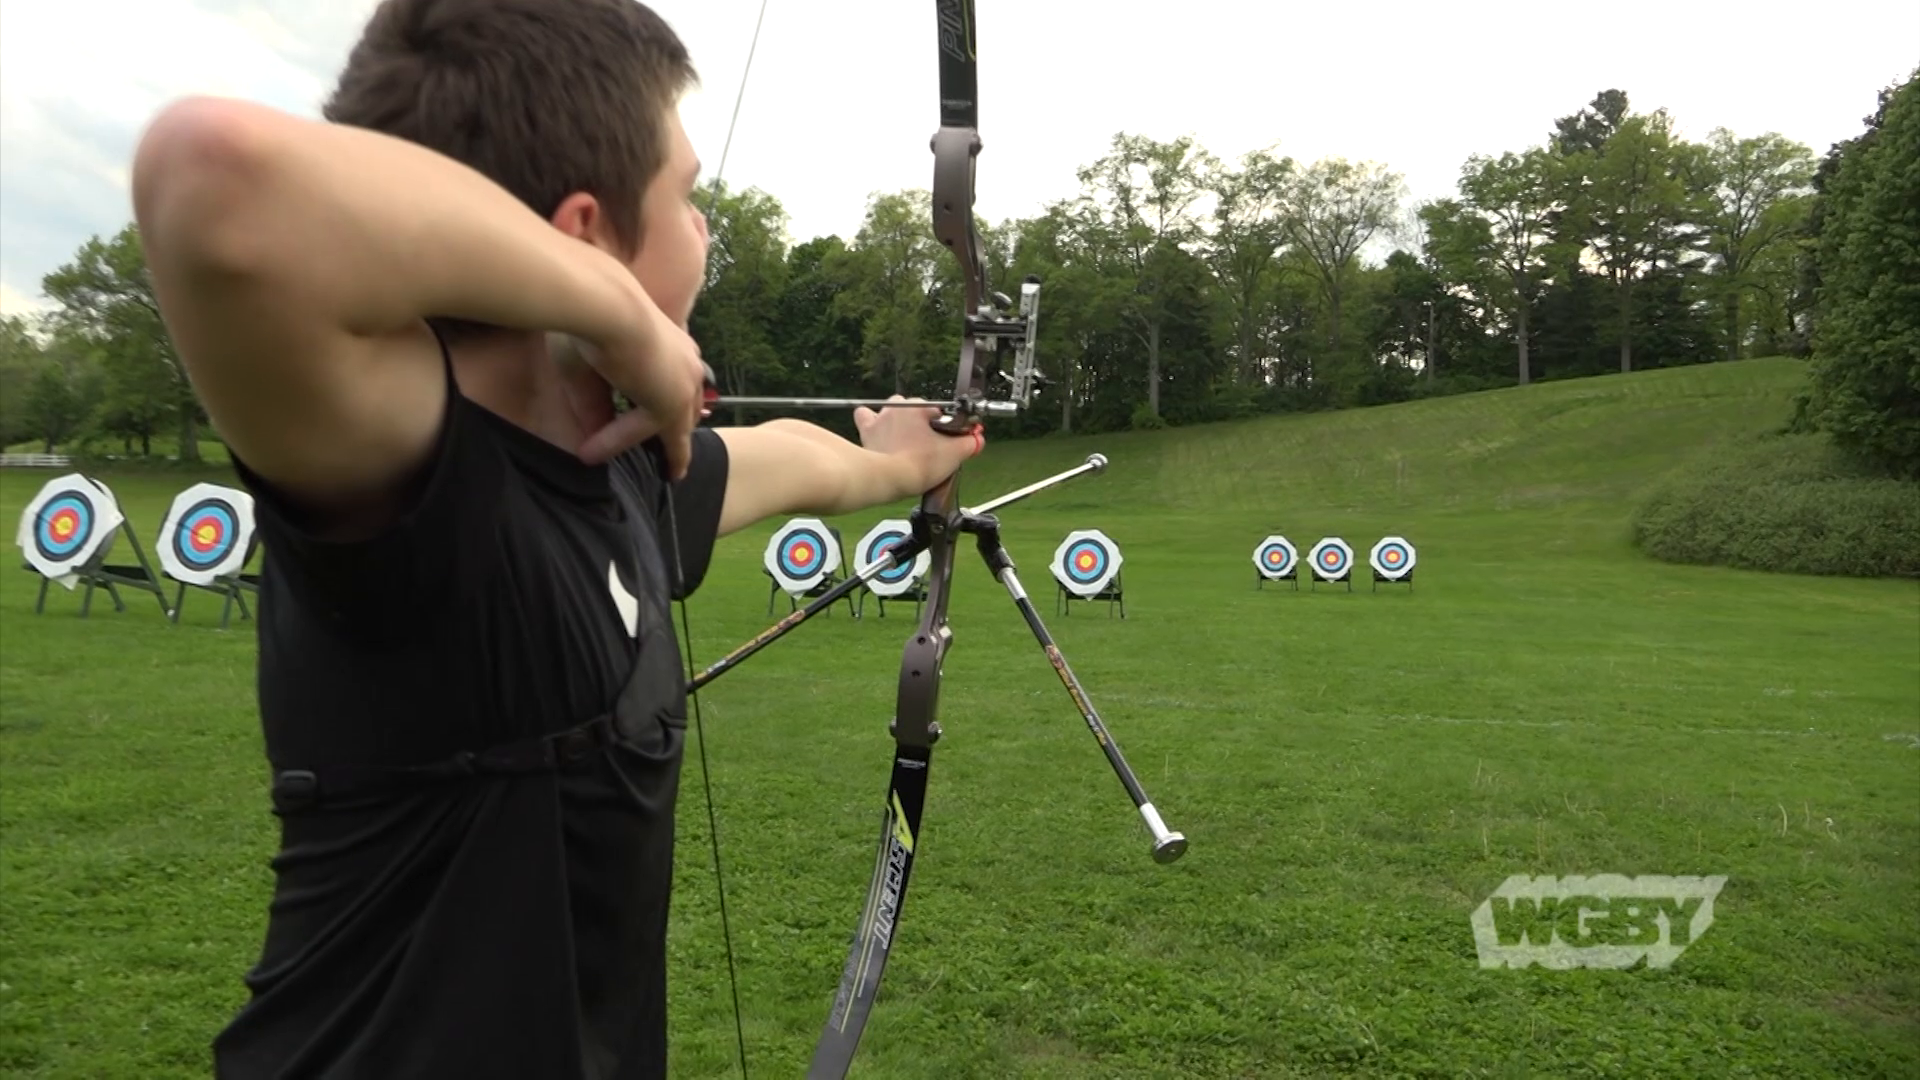 Visit the Sattva Center for Archery Training in Florence, MA where they train people in the ancient sport, skill, and art of archery.